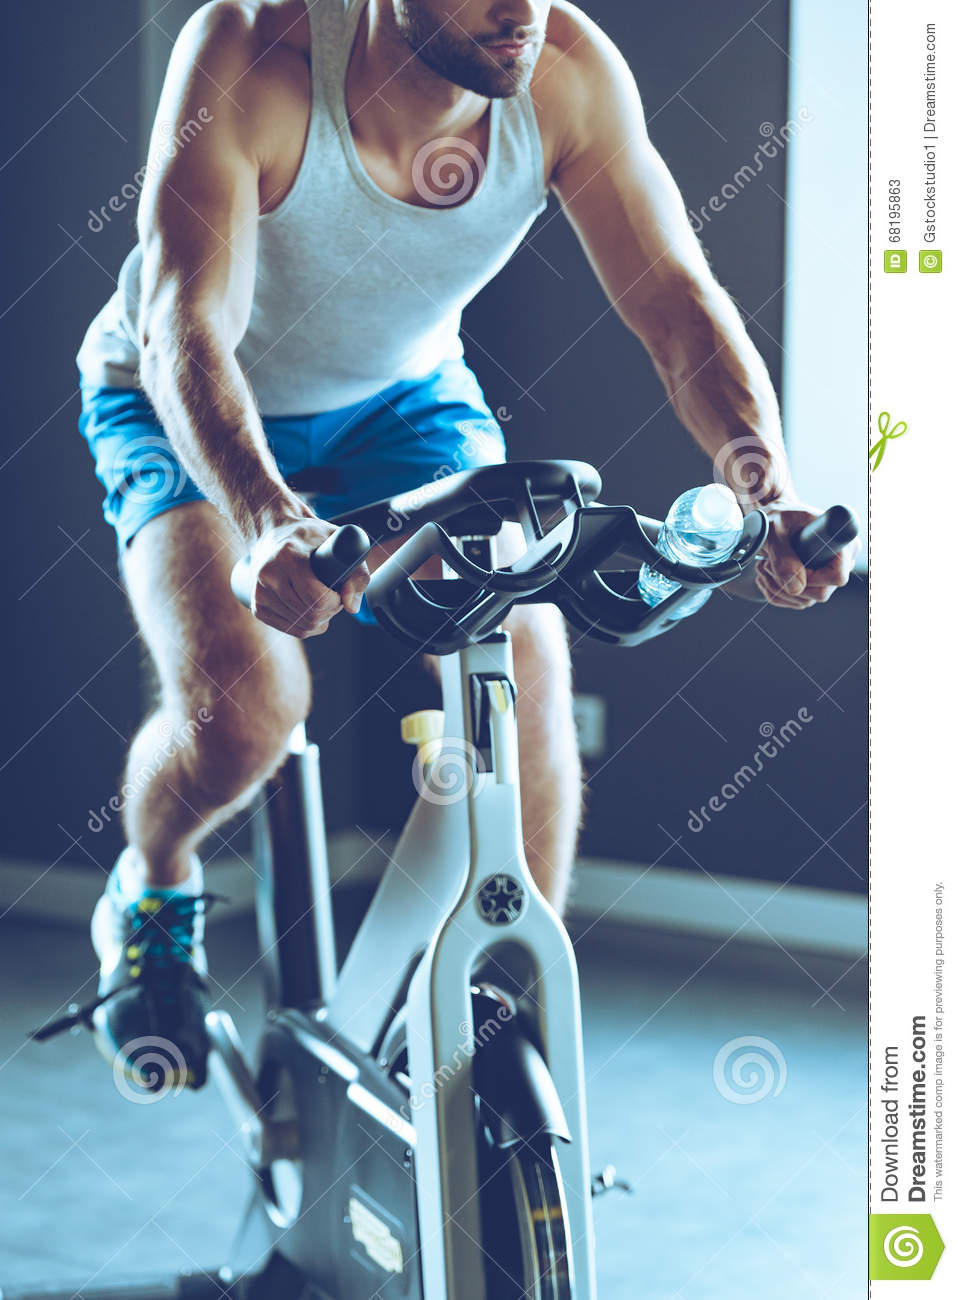 cycling machine for weight loss price